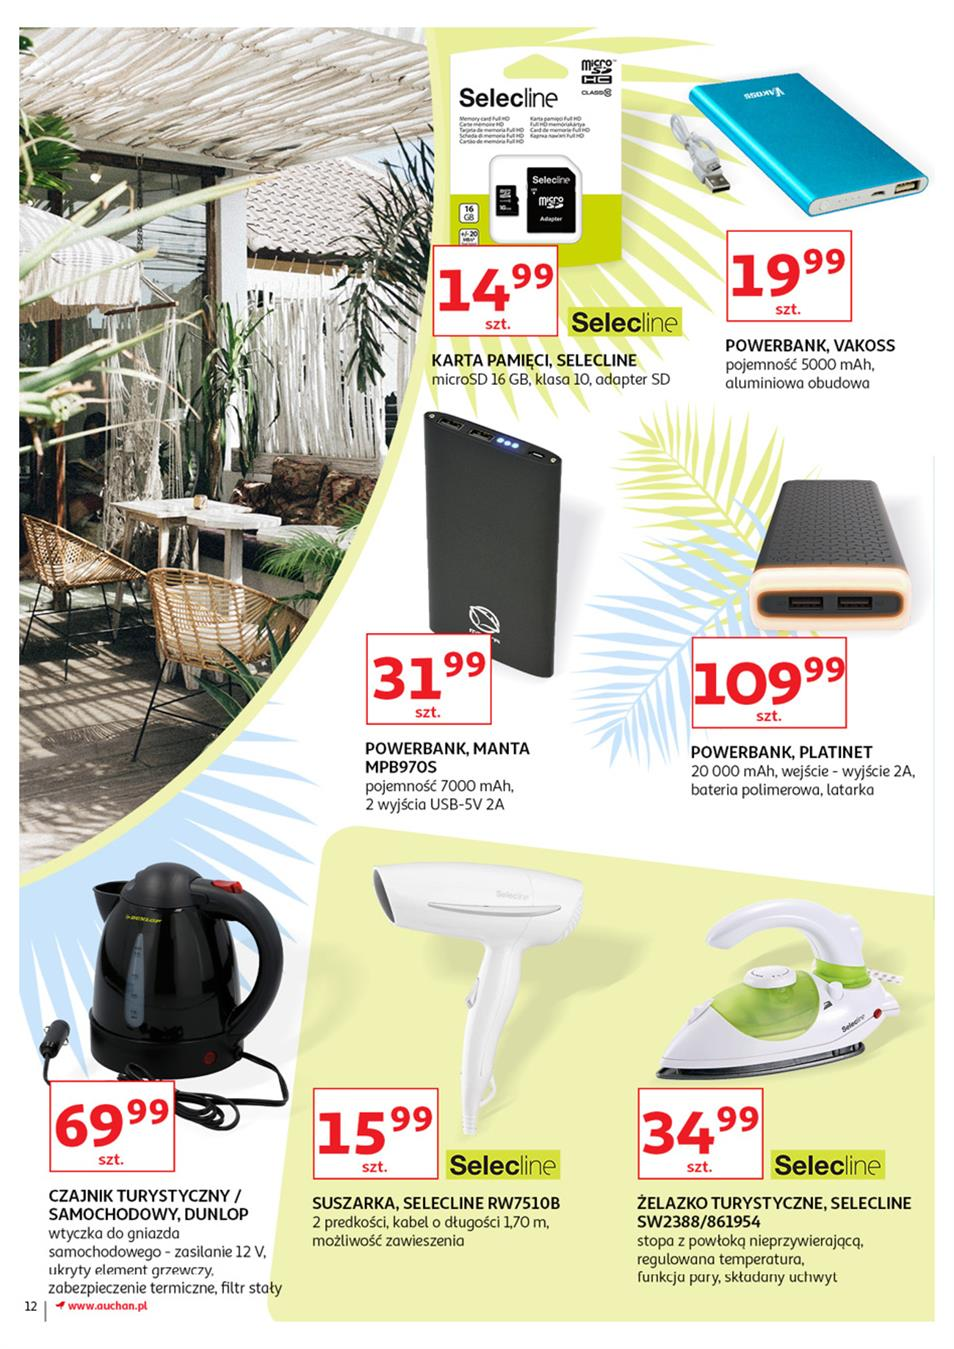 Gazetka Auchan Polska Sp. z o.o. nr 12 od 2019-06-21 do 2019-07-03